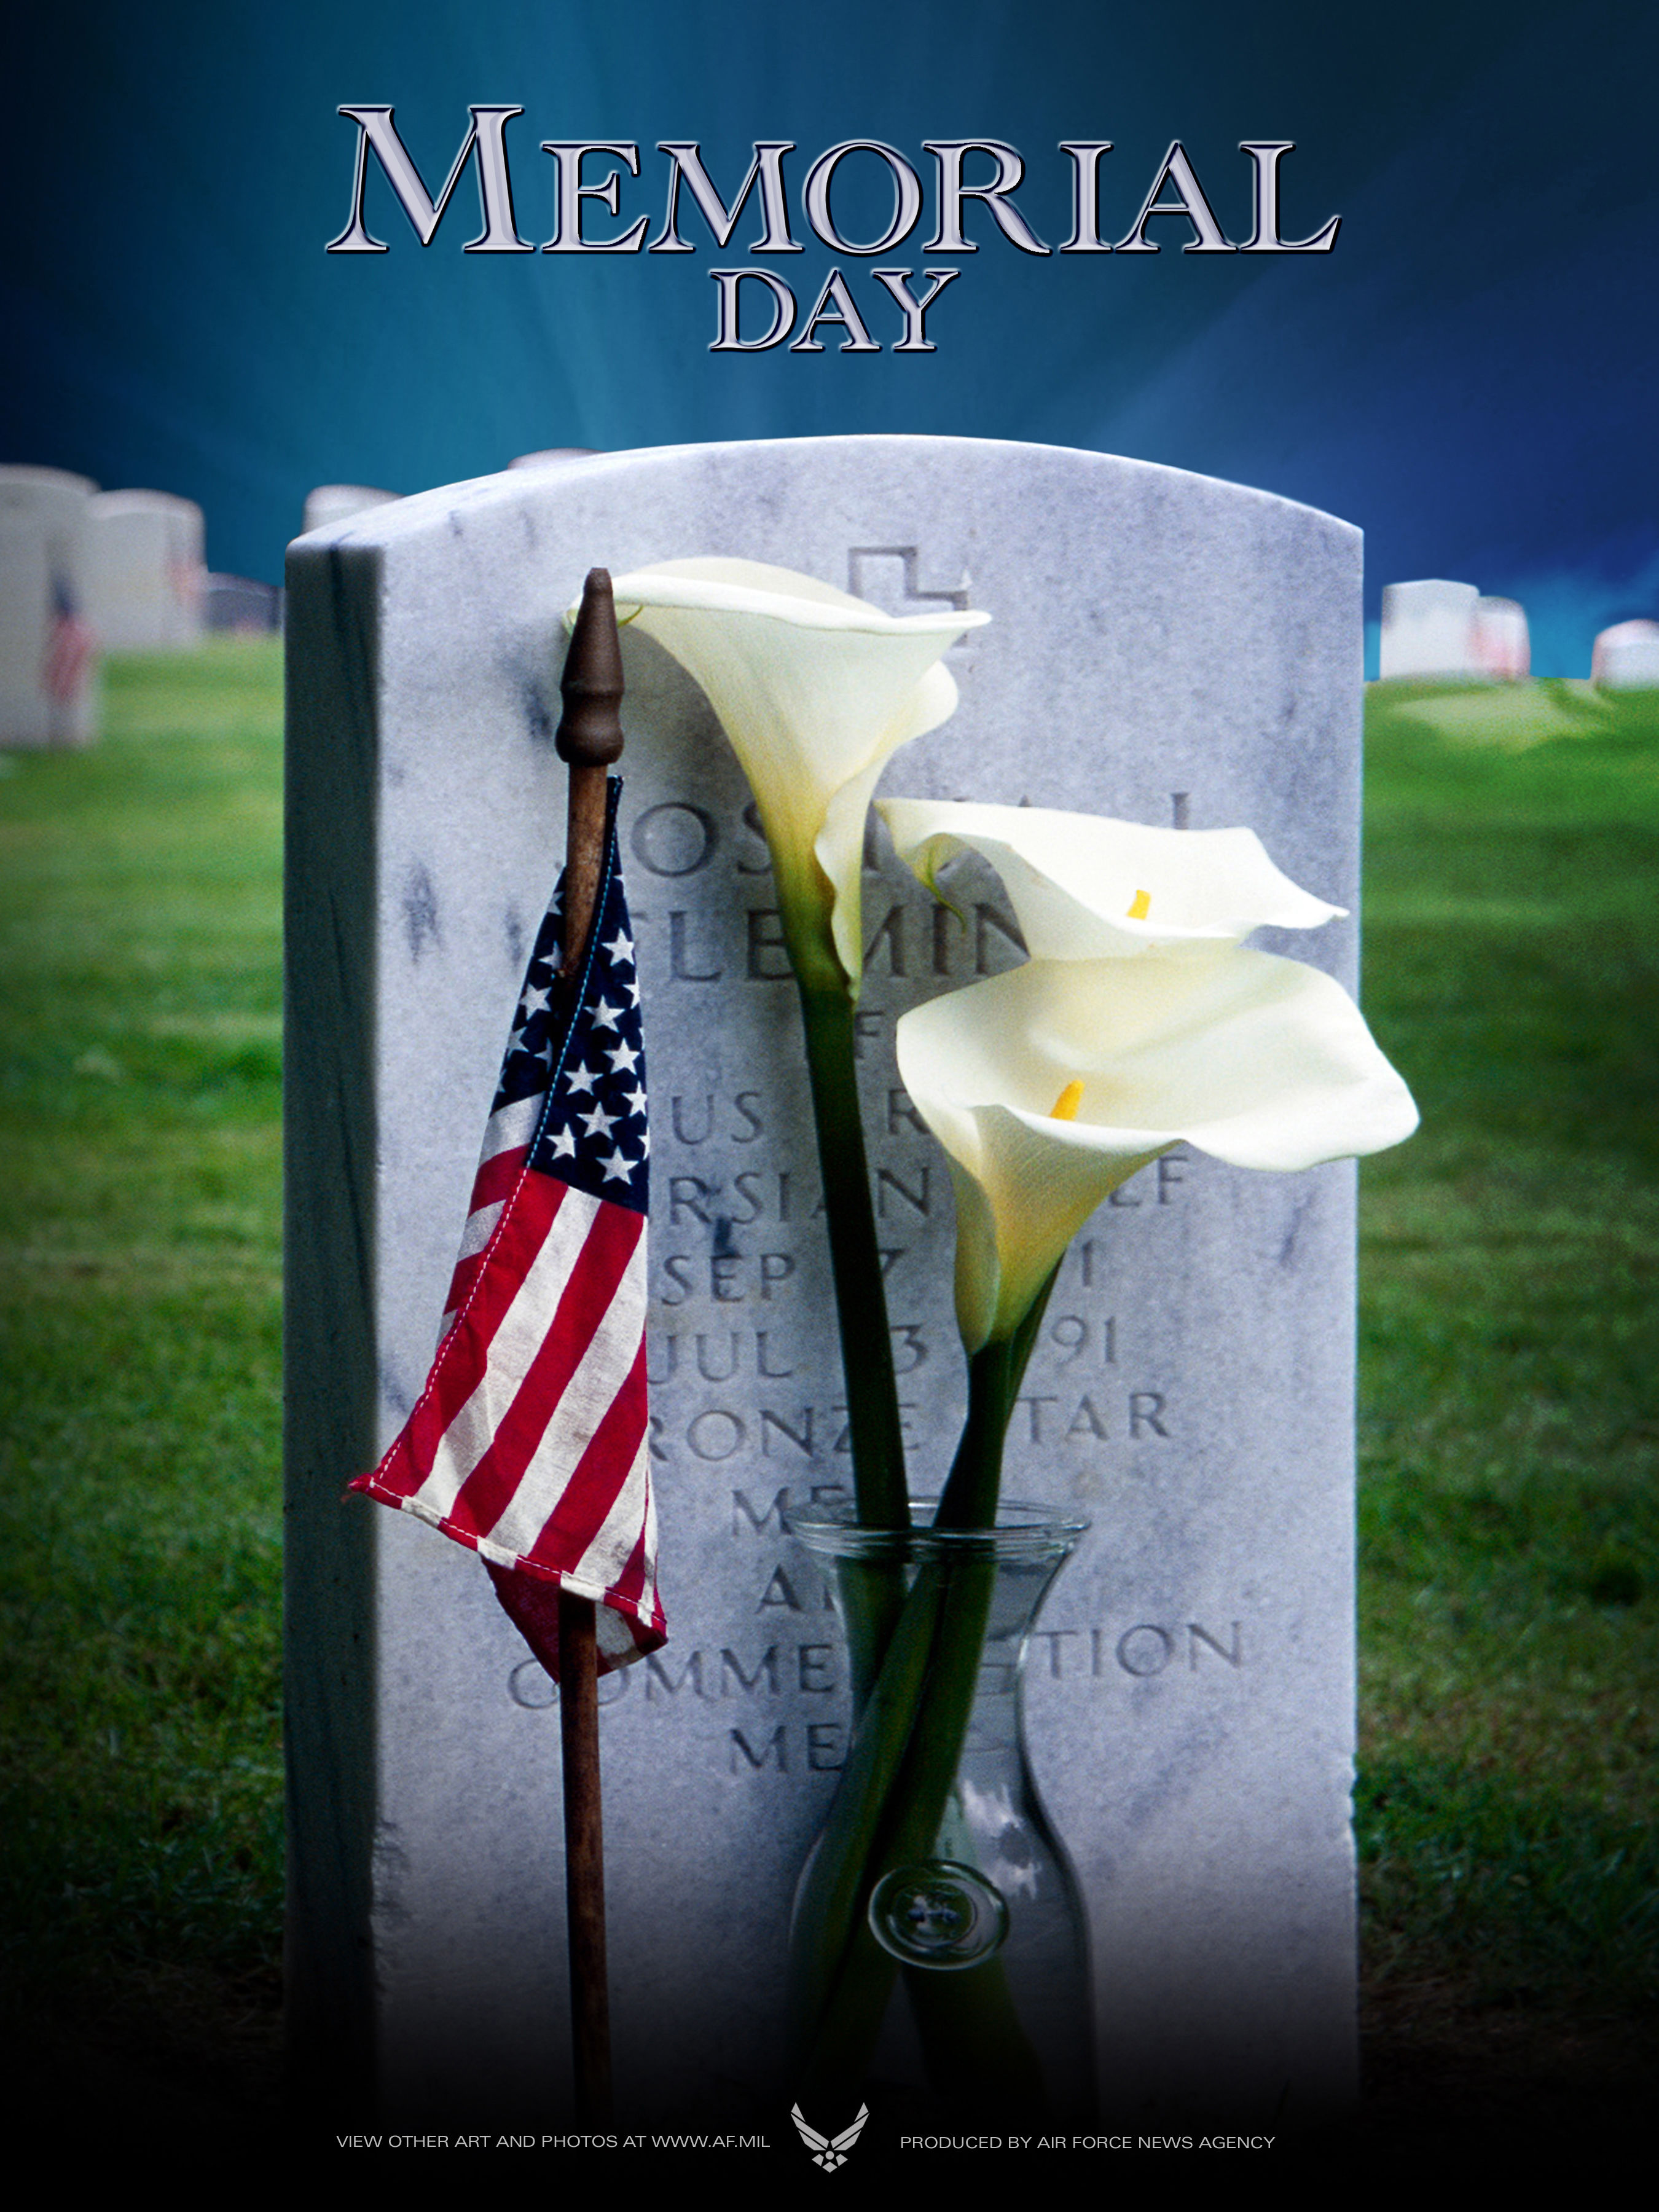 Memorial Day Image Pictures Photos And Images For